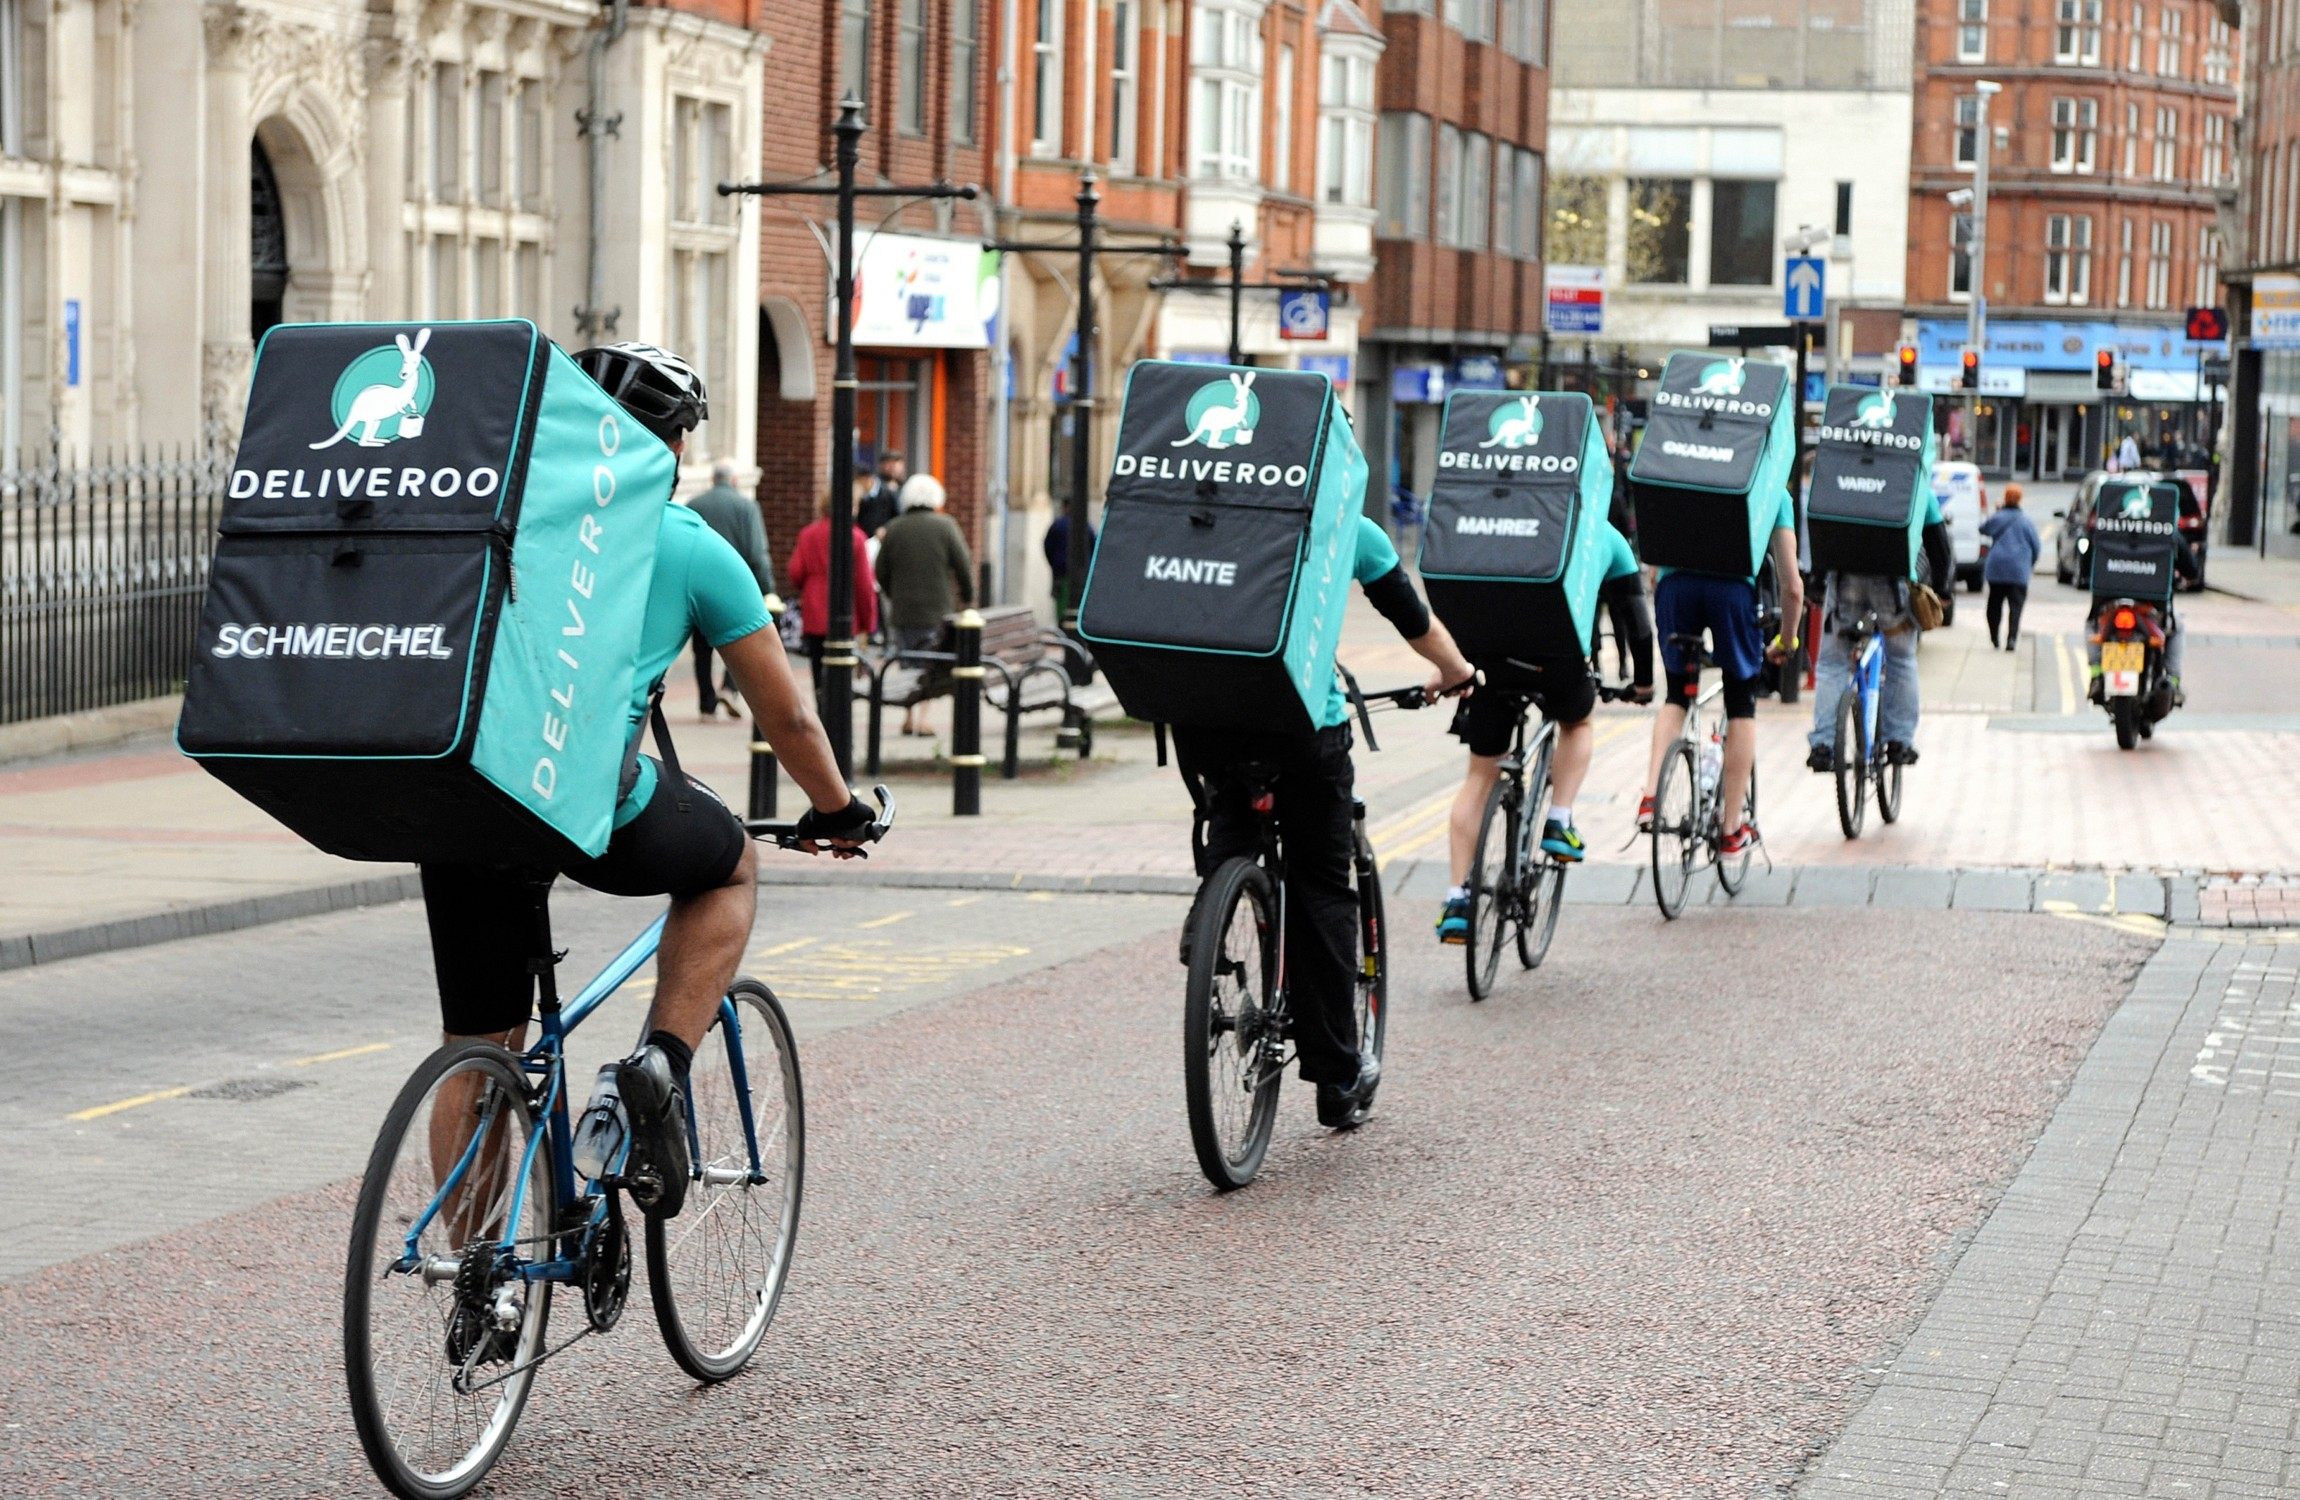 Deliveroo Launches Alcohol Delivery Service In Ireland